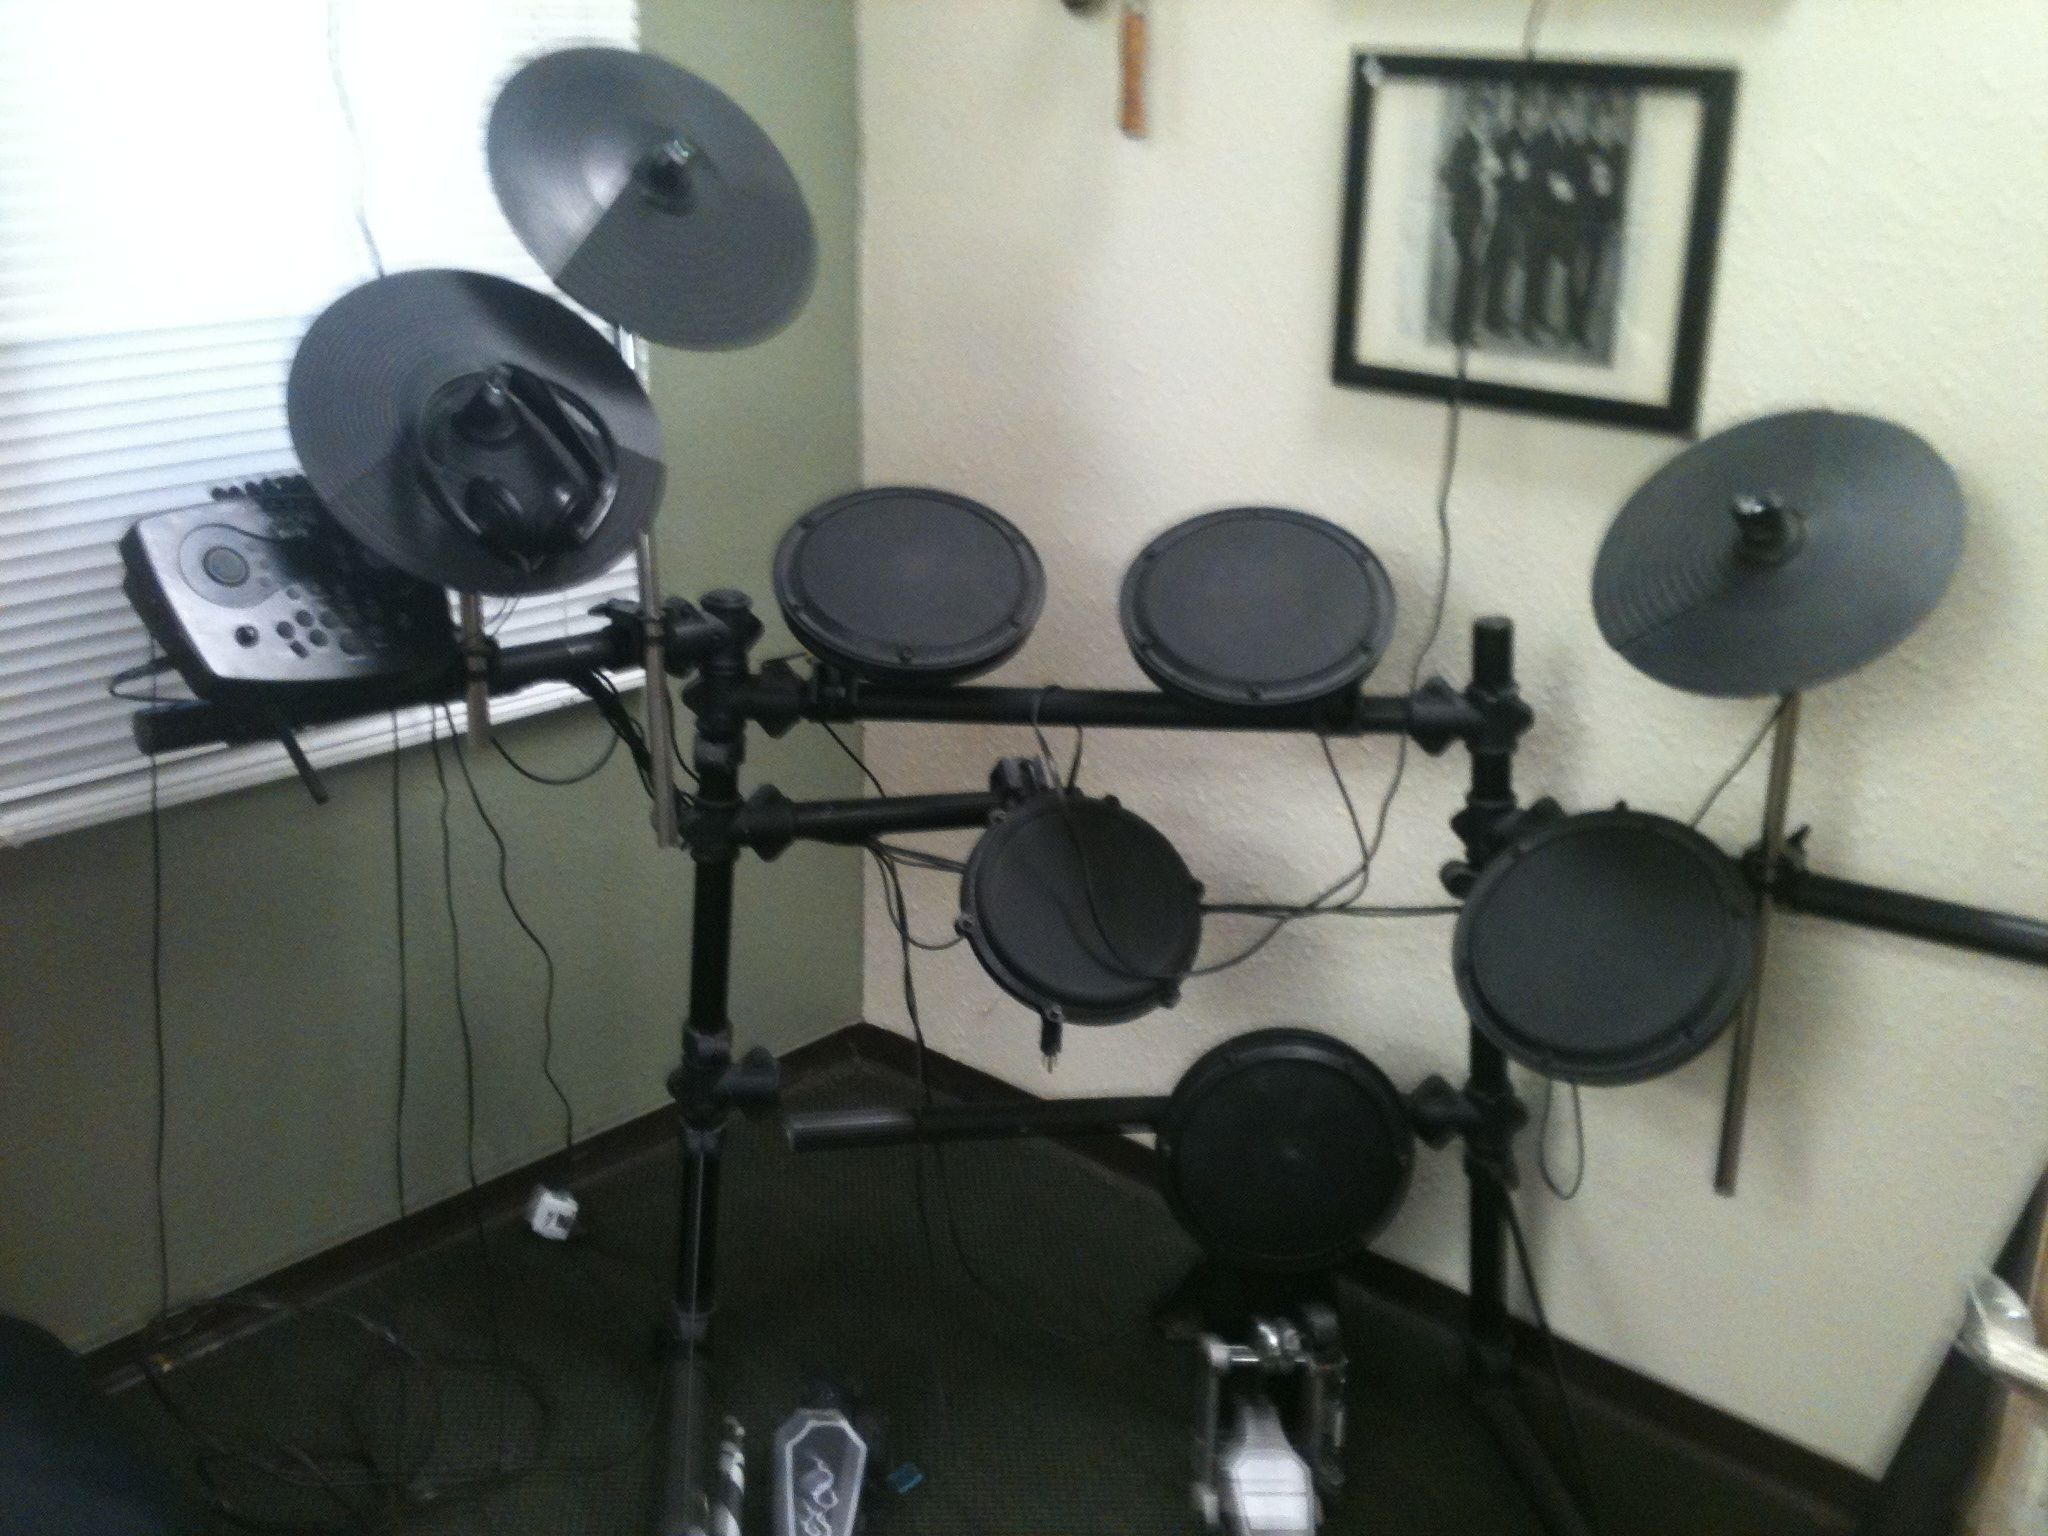 electric drum set in lilbees 39 garage sale spokane valley wa garage sale electronics. Black Bedroom Furniture Sets. Home Design Ideas